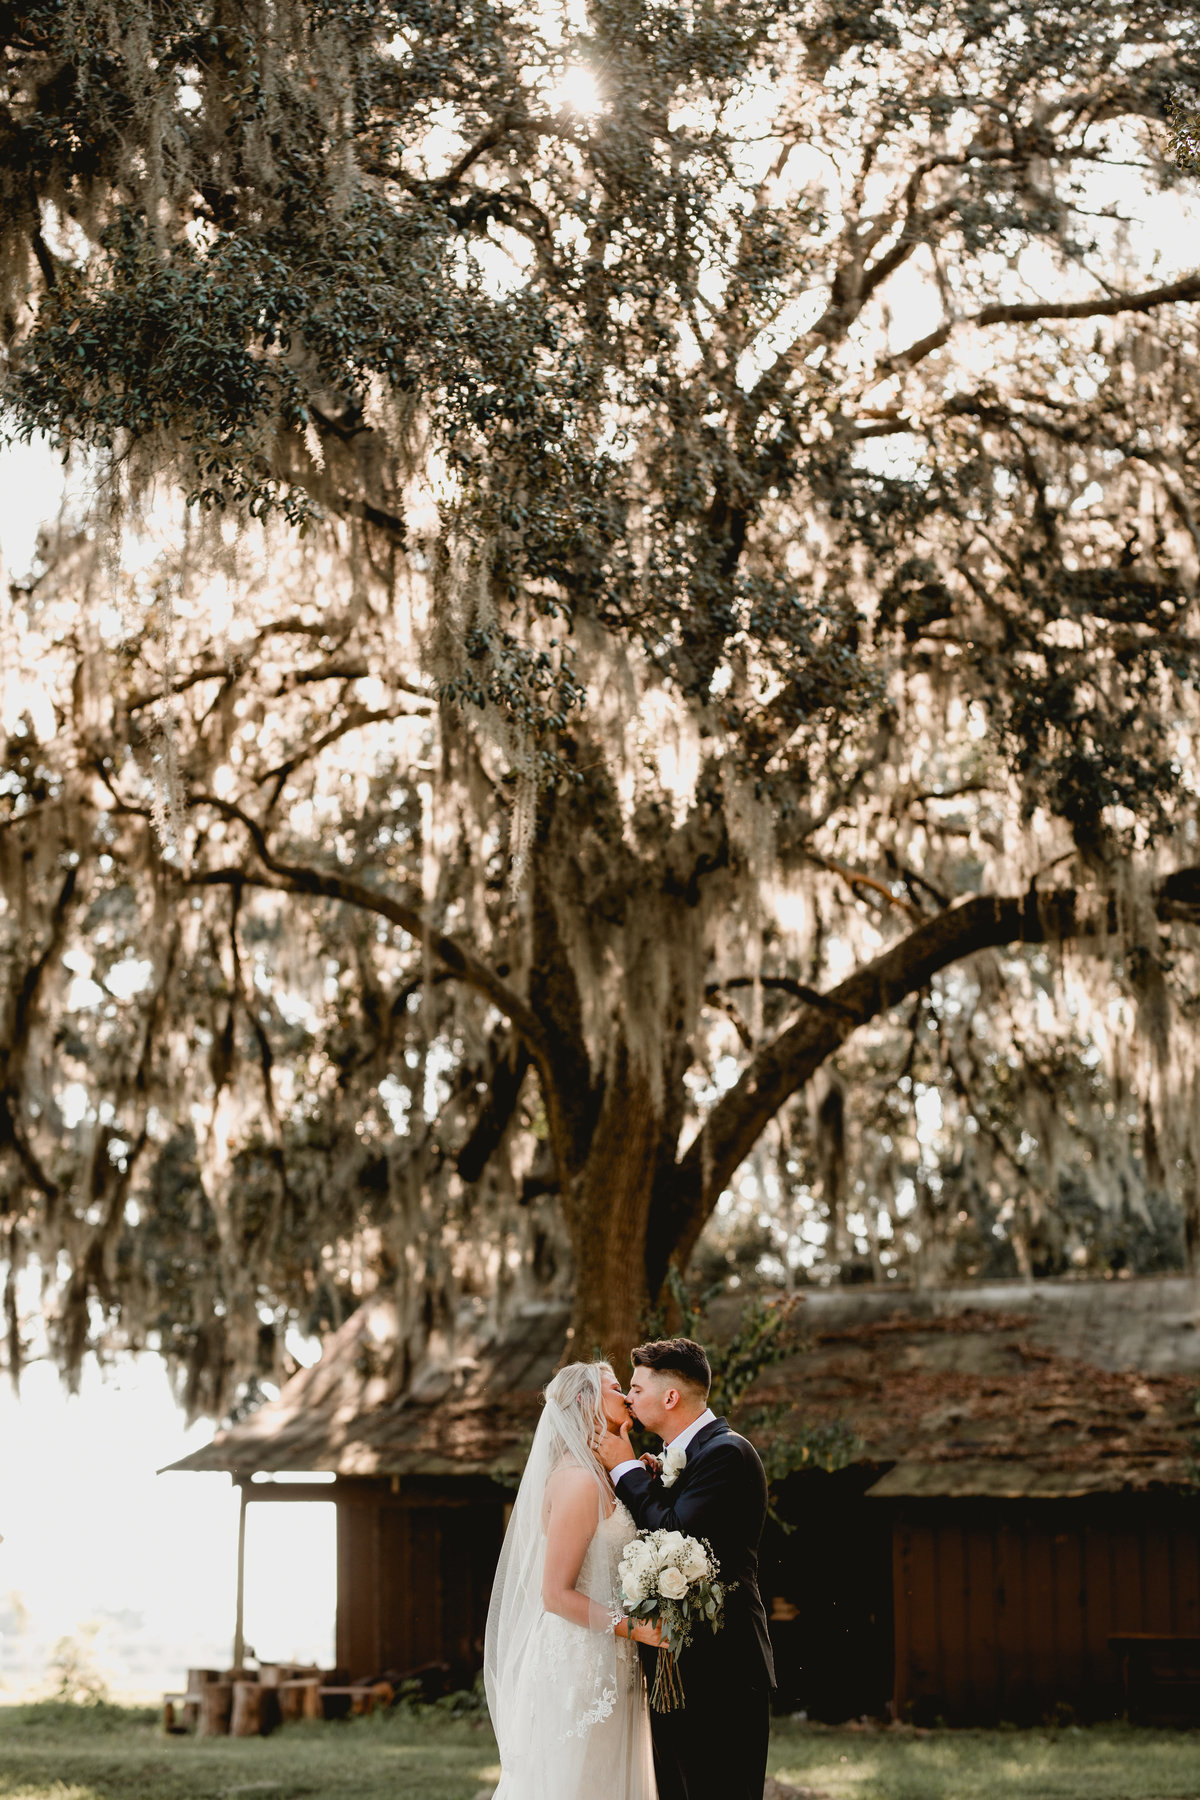 Bride and groom pictures taken after the ceremony by lifestyle wedding photographer at Seven Hills Farm, Fl.